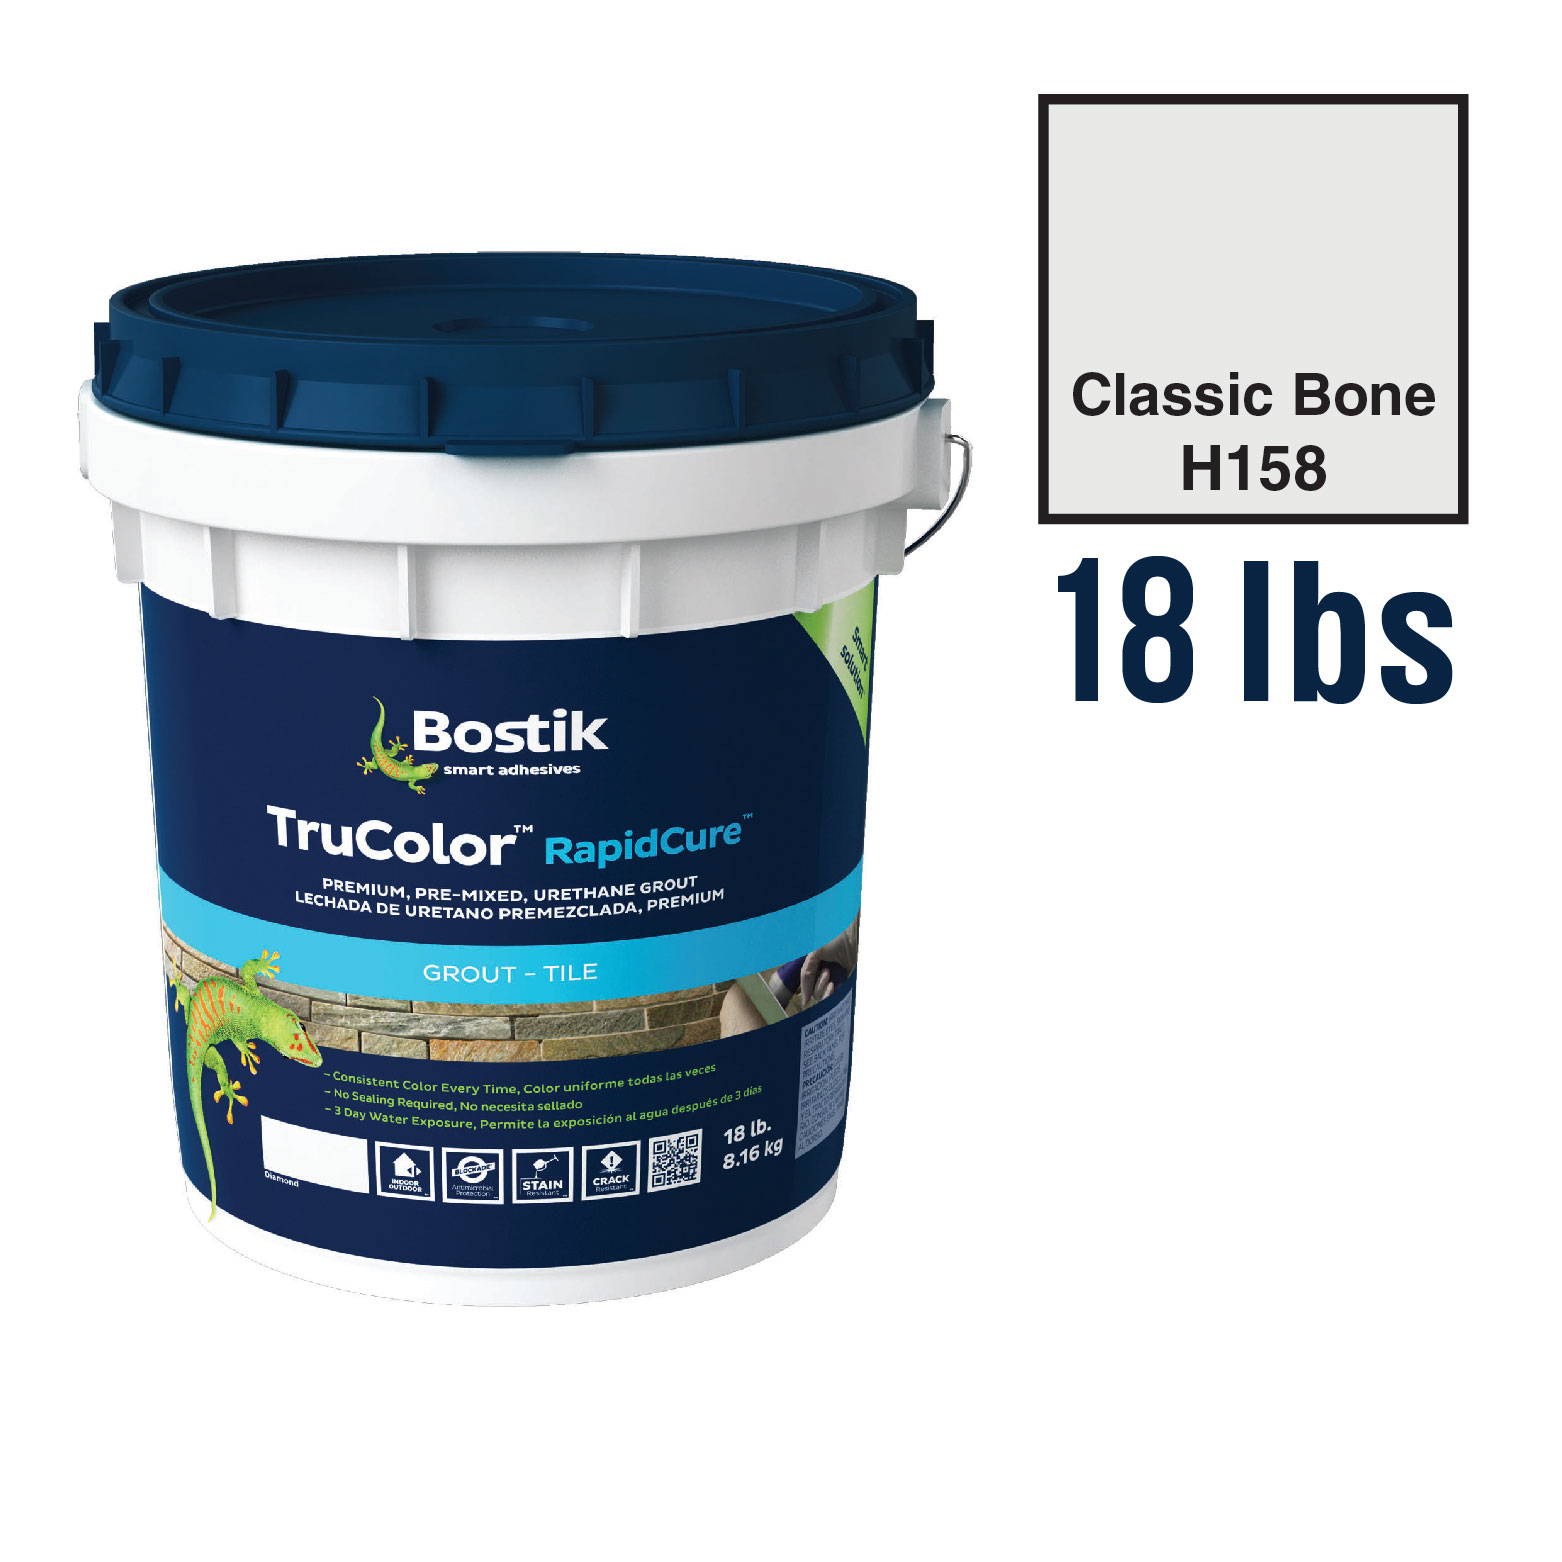 Clic Bone Trucolor Grout